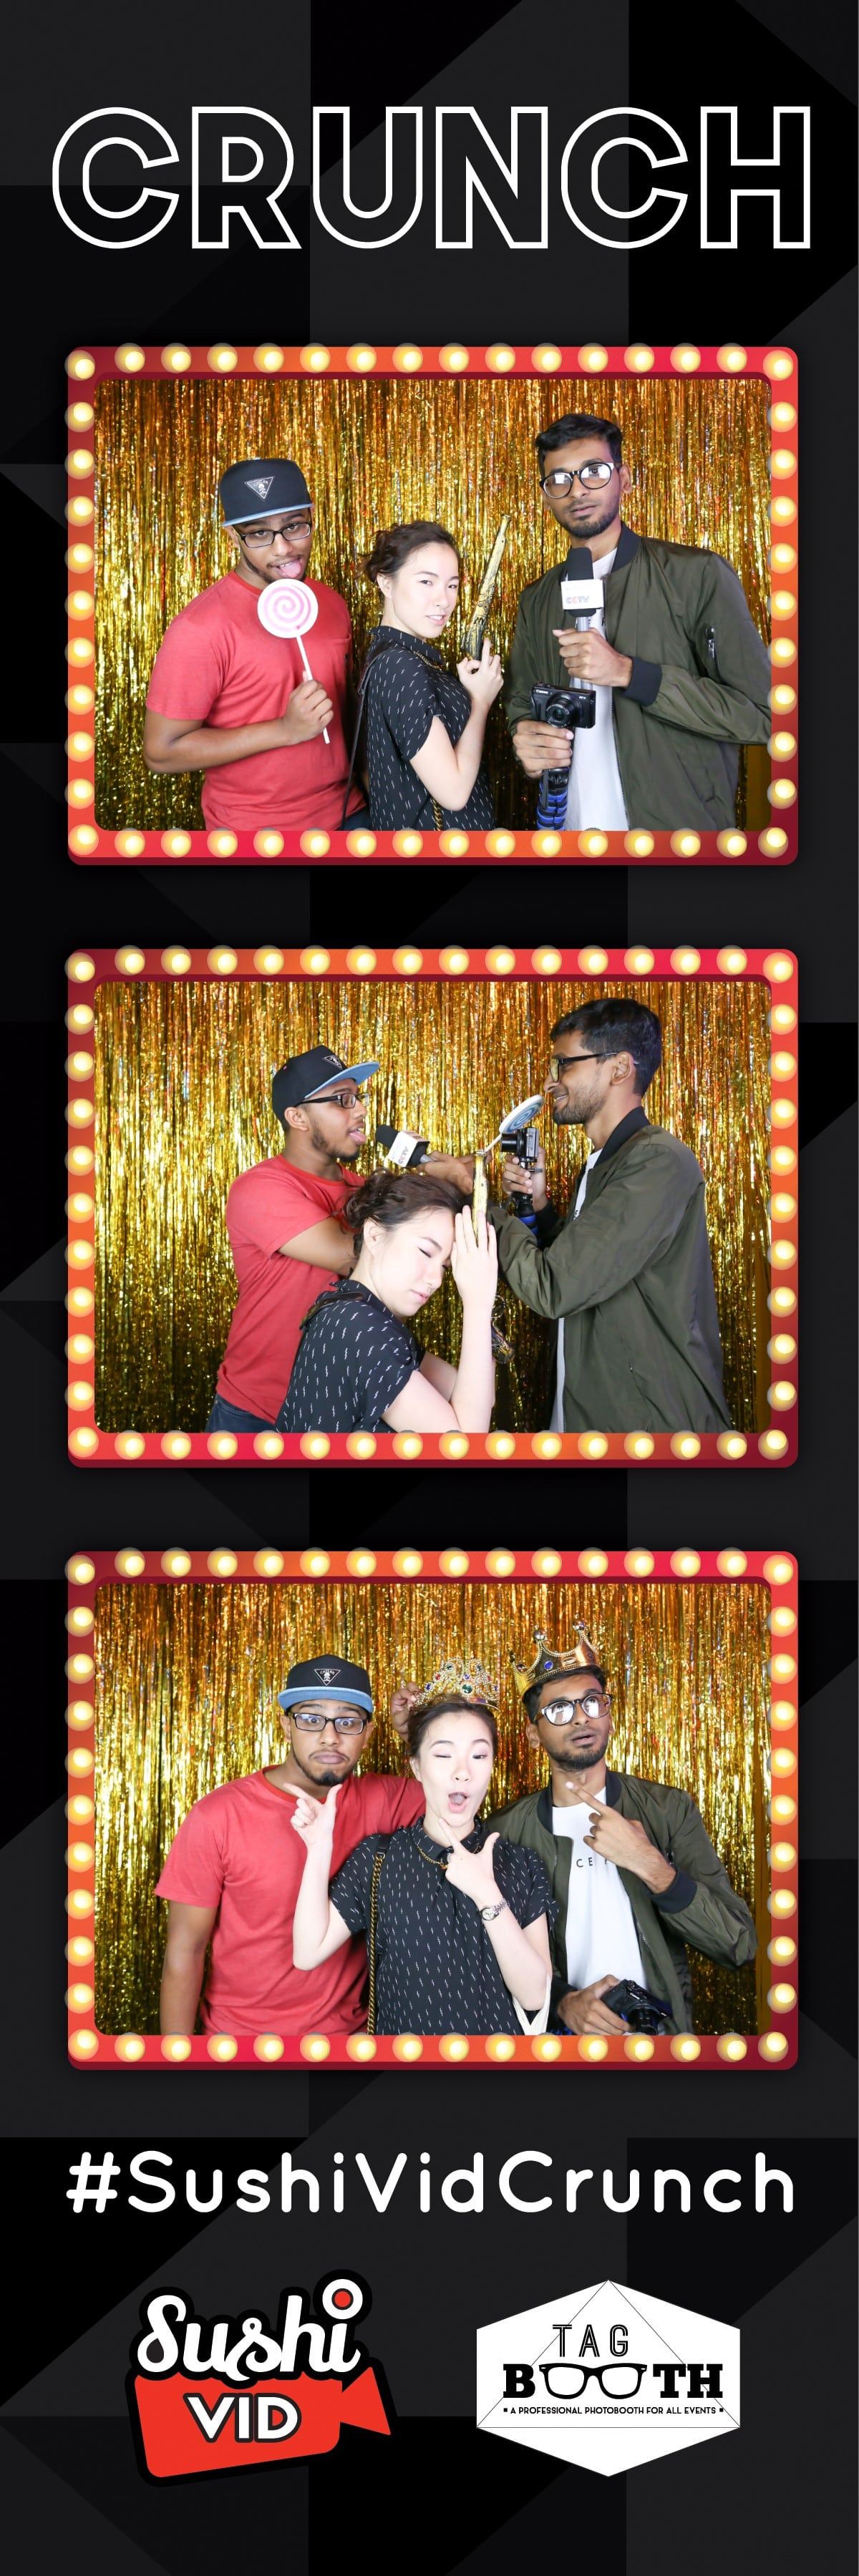 Sushivid+crunch+tagbooth1+55